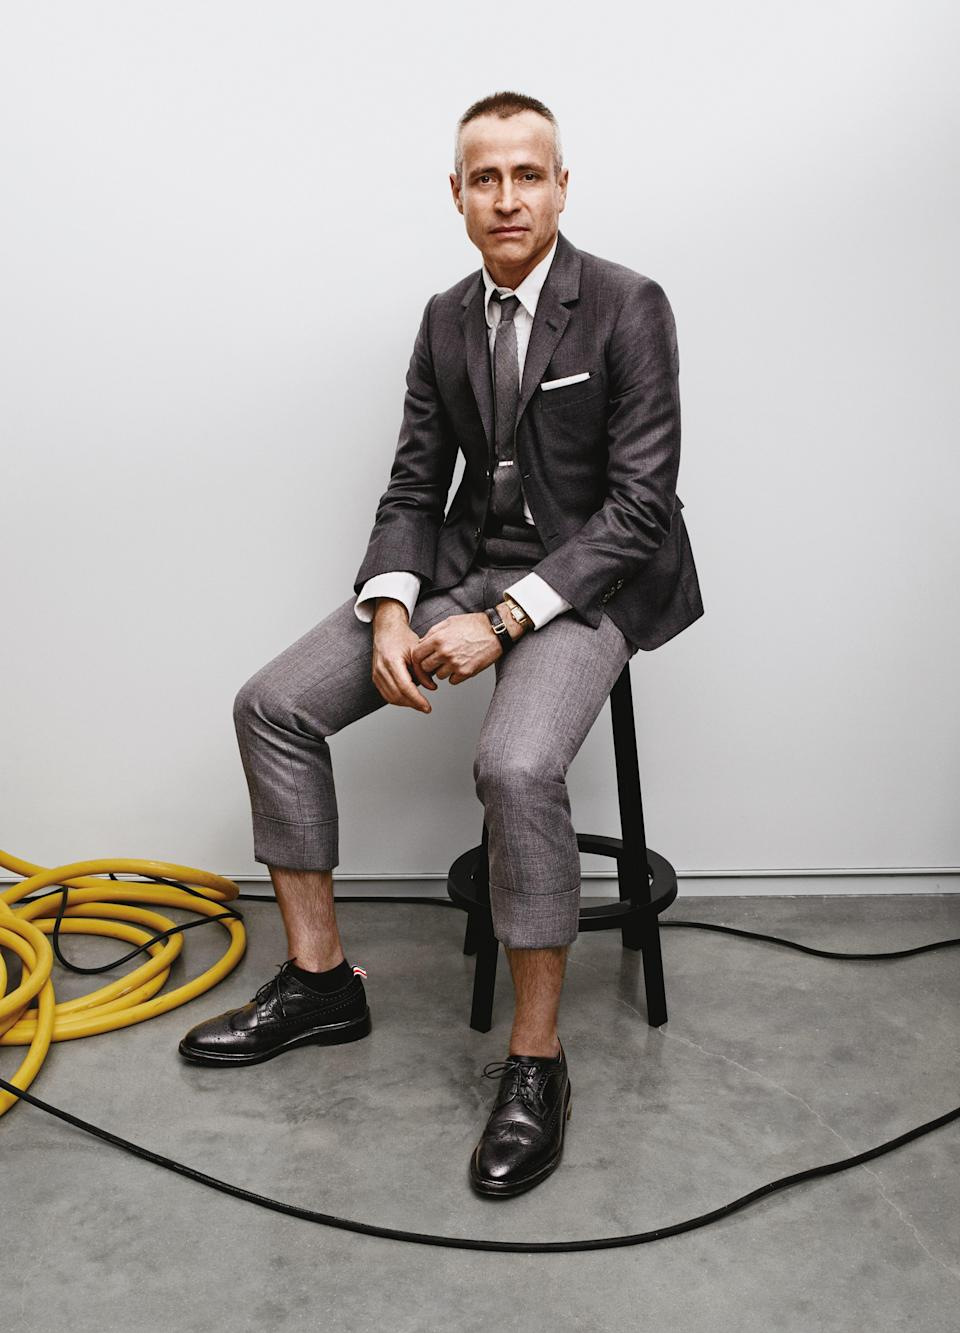 Break-free trousers that let your ankles breathe (Or <em>really</em> breathe if they come from the master of abbreviated pants, Thom Browne).